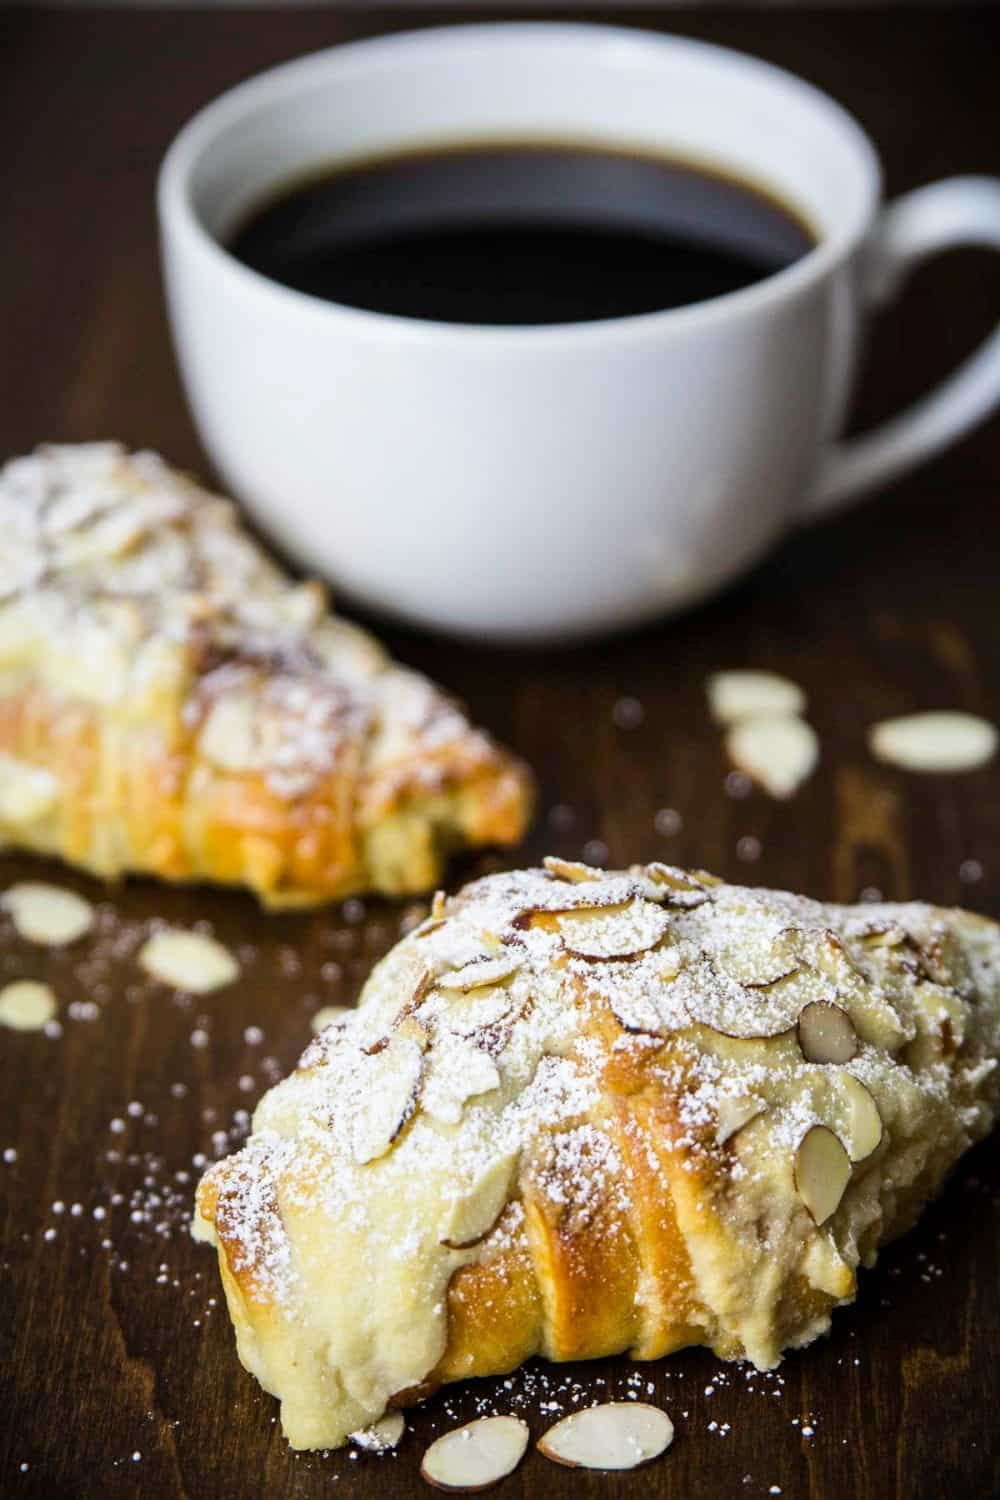 almond croissant with a cup of coffee beside it